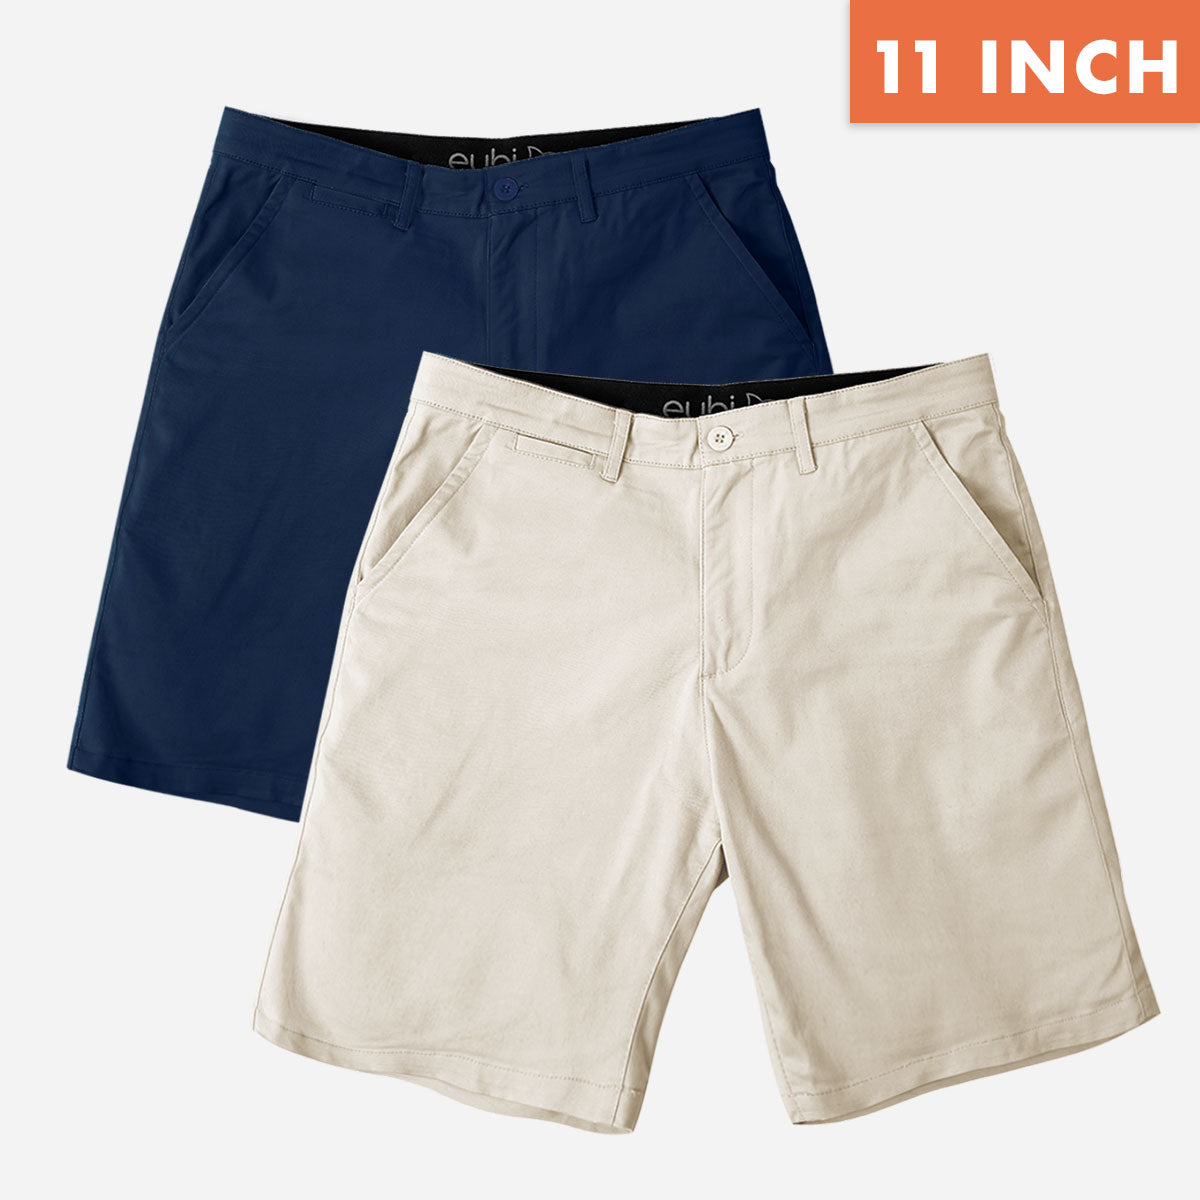 "11"" Navy Blue + Sandy Brown All Day Shorts Chino Shorts Duo Pack"